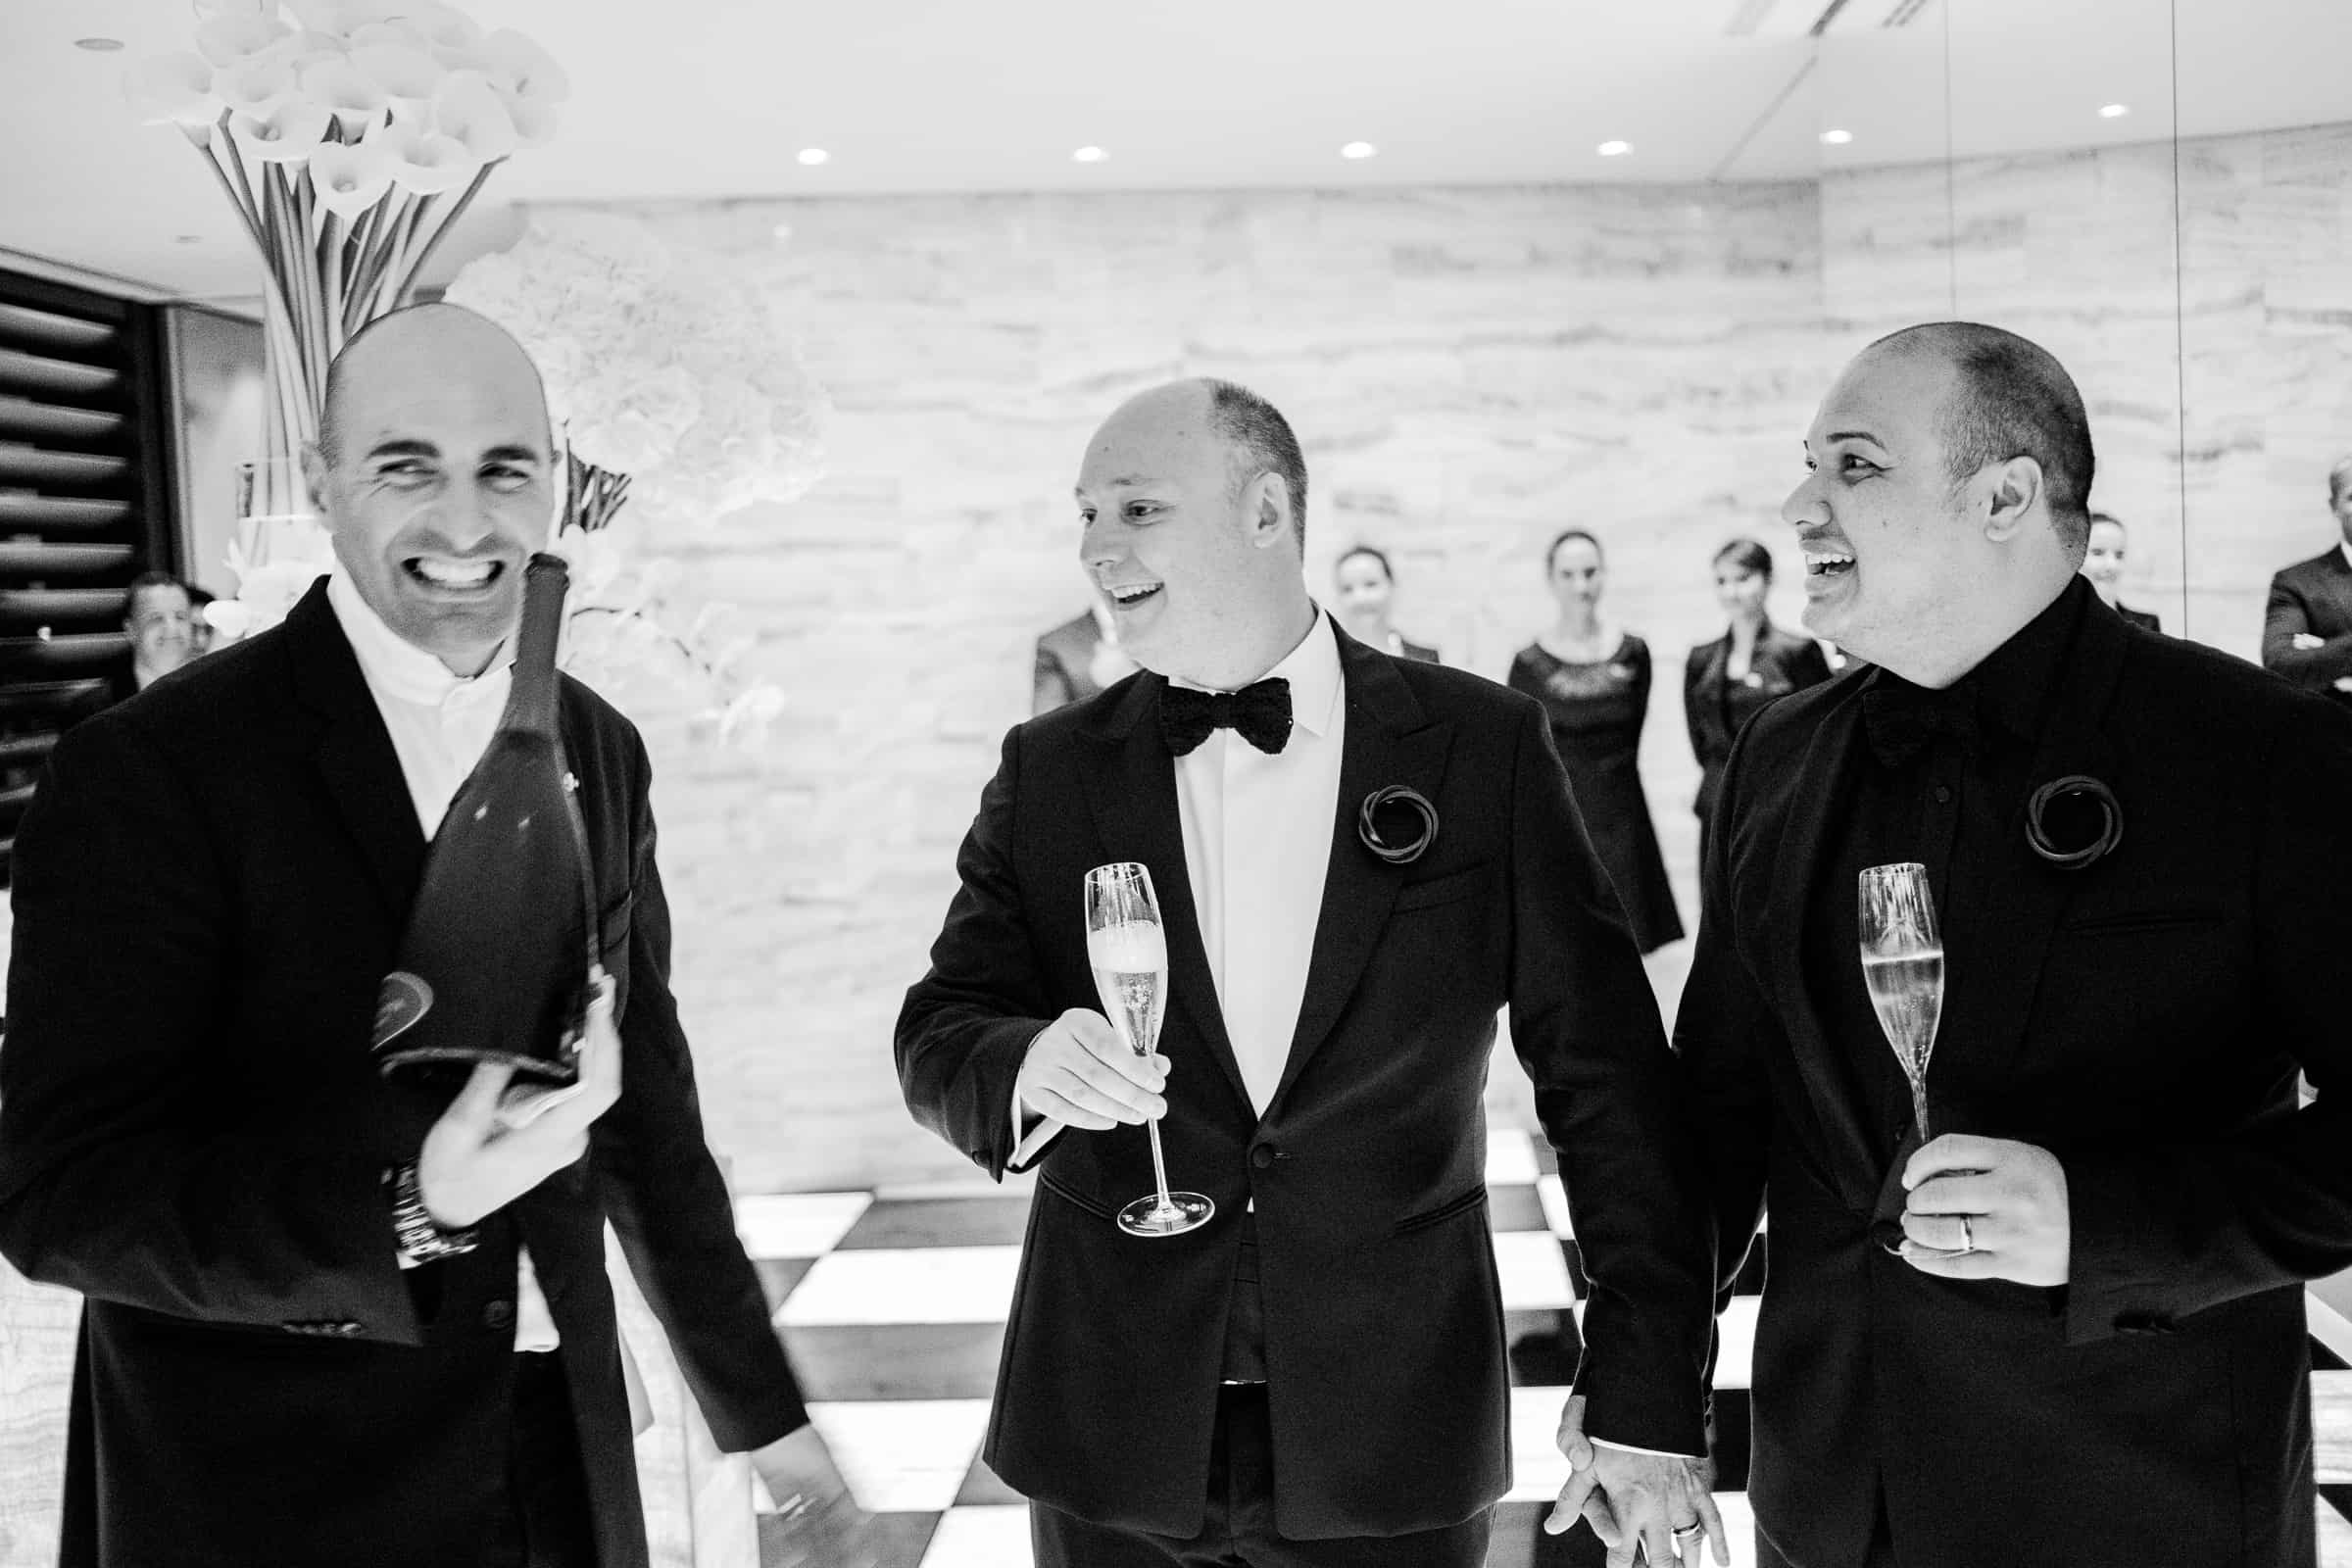 Champagne is served to the grooms